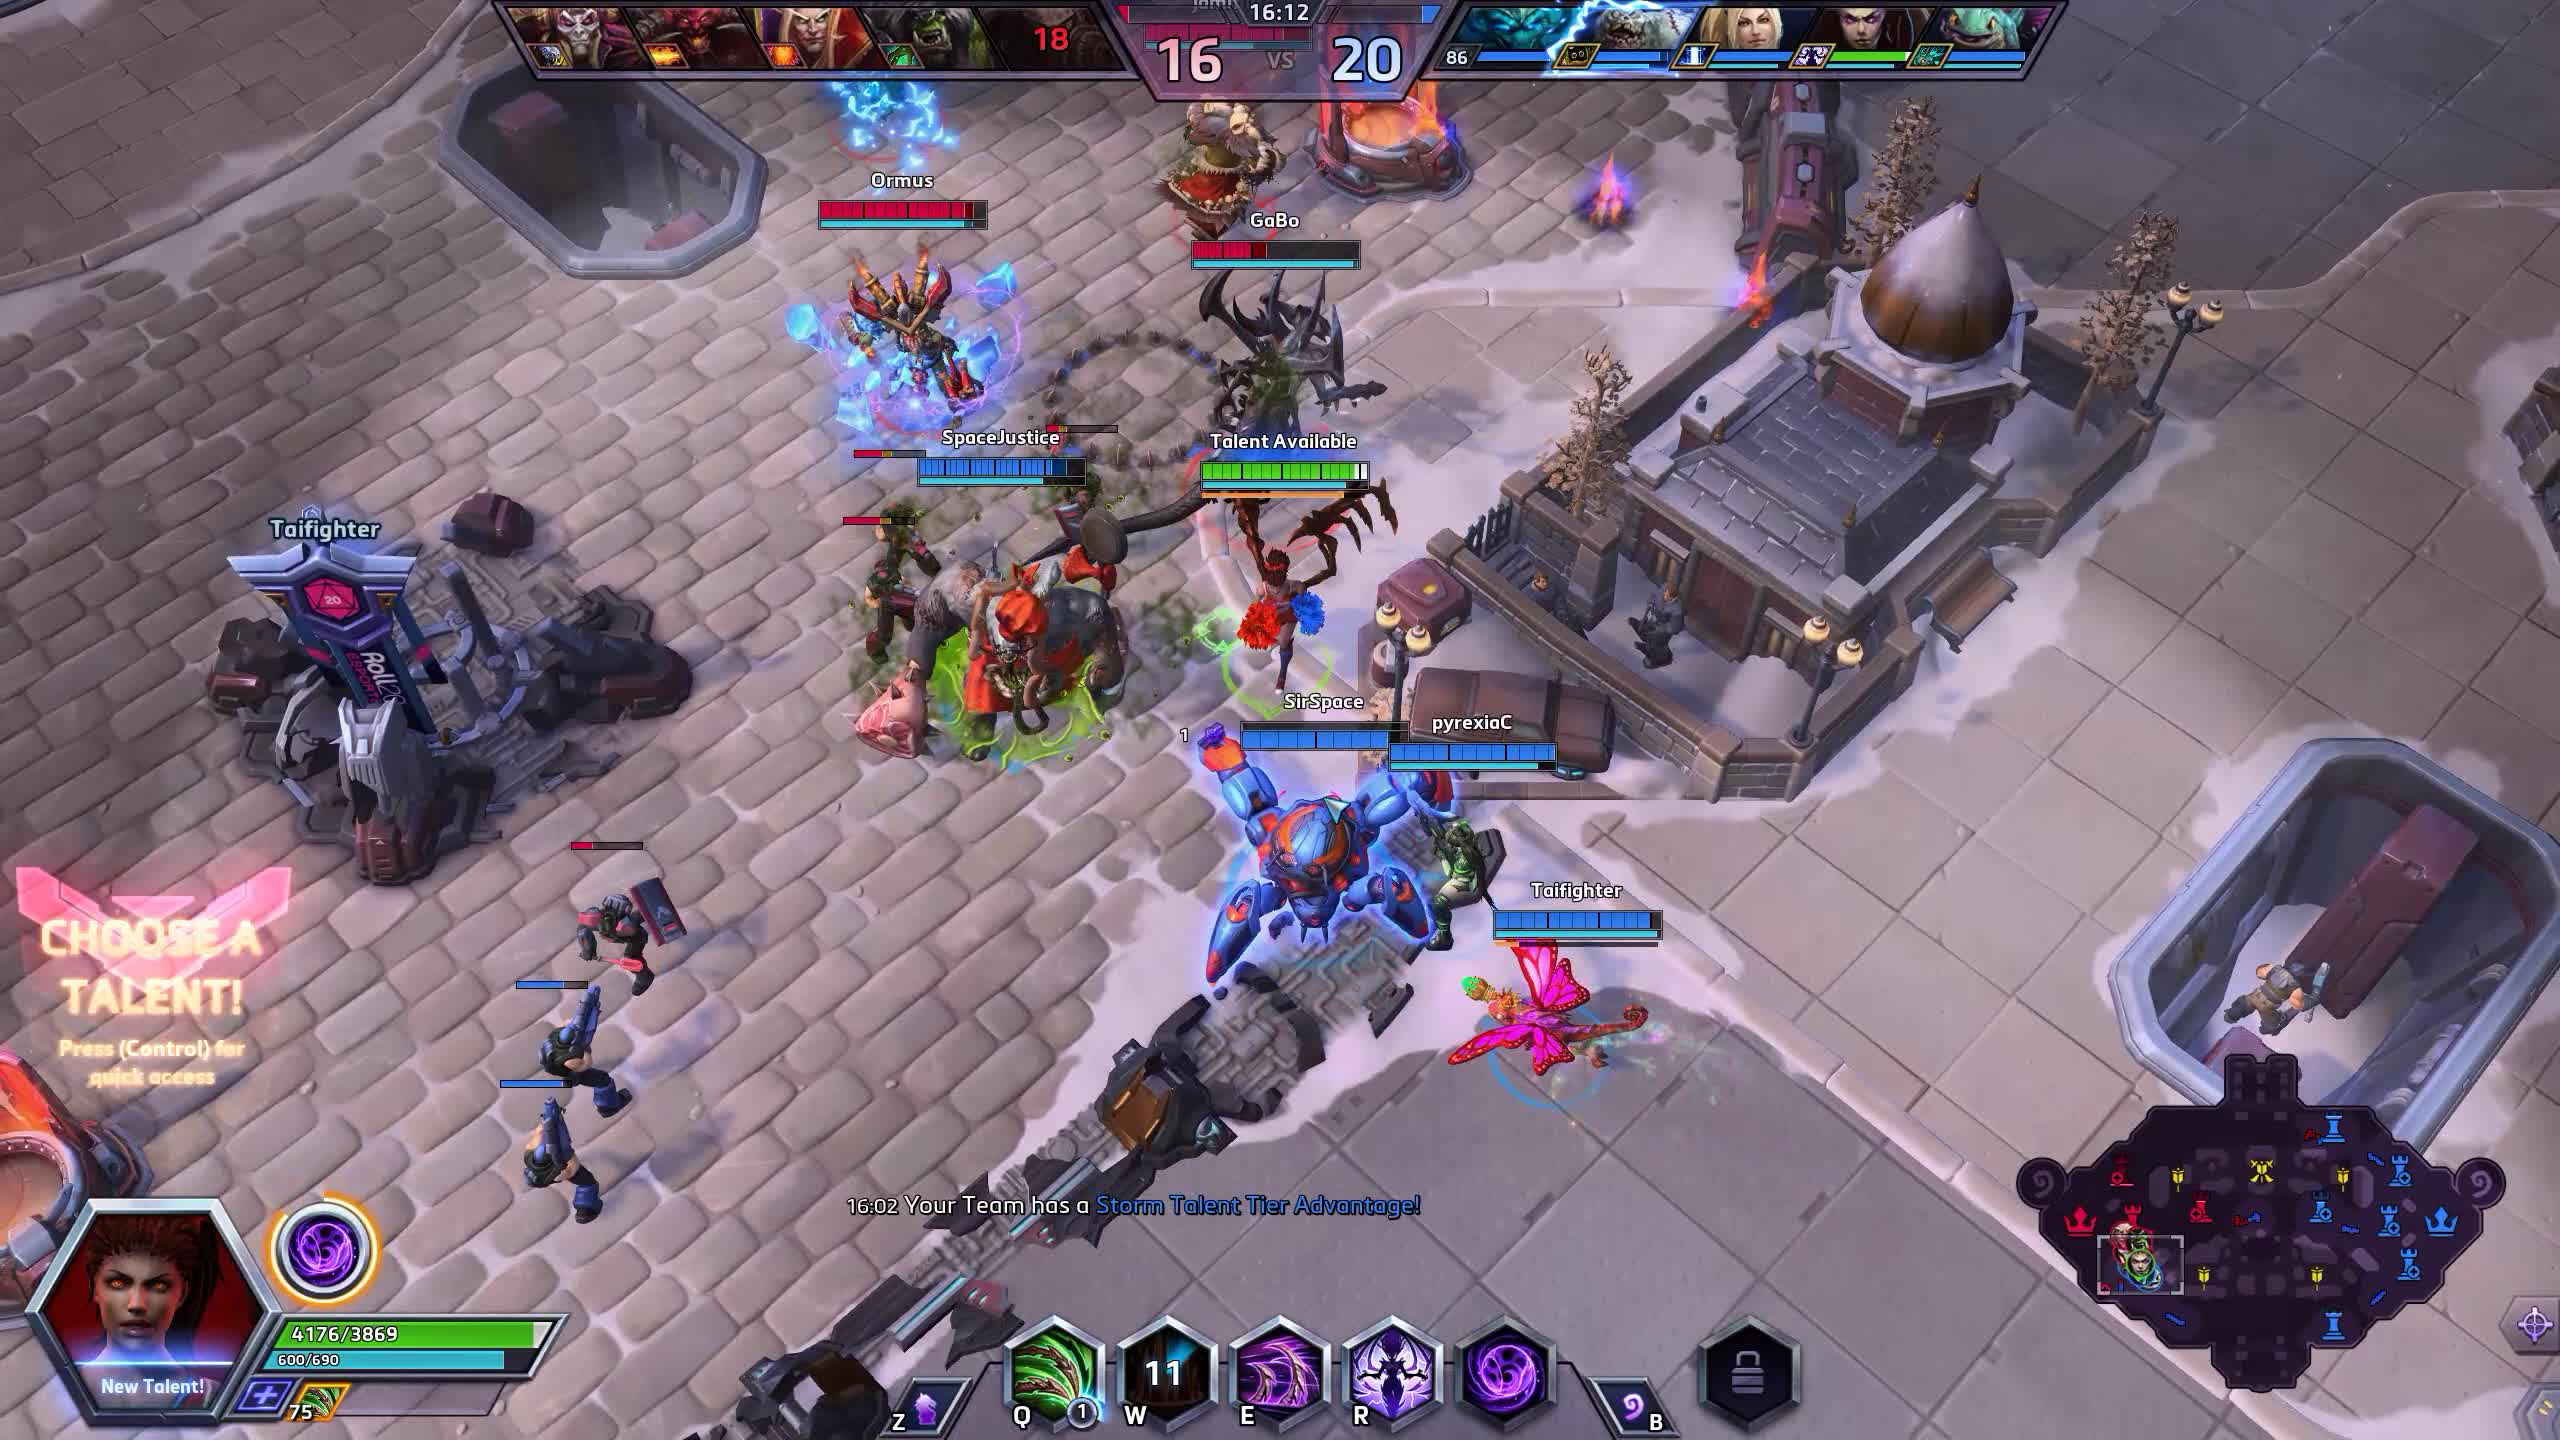 heroesofthestorm, Heroes of the Storm 2018.12.02 - 21.13.29.02.DVR GIFs